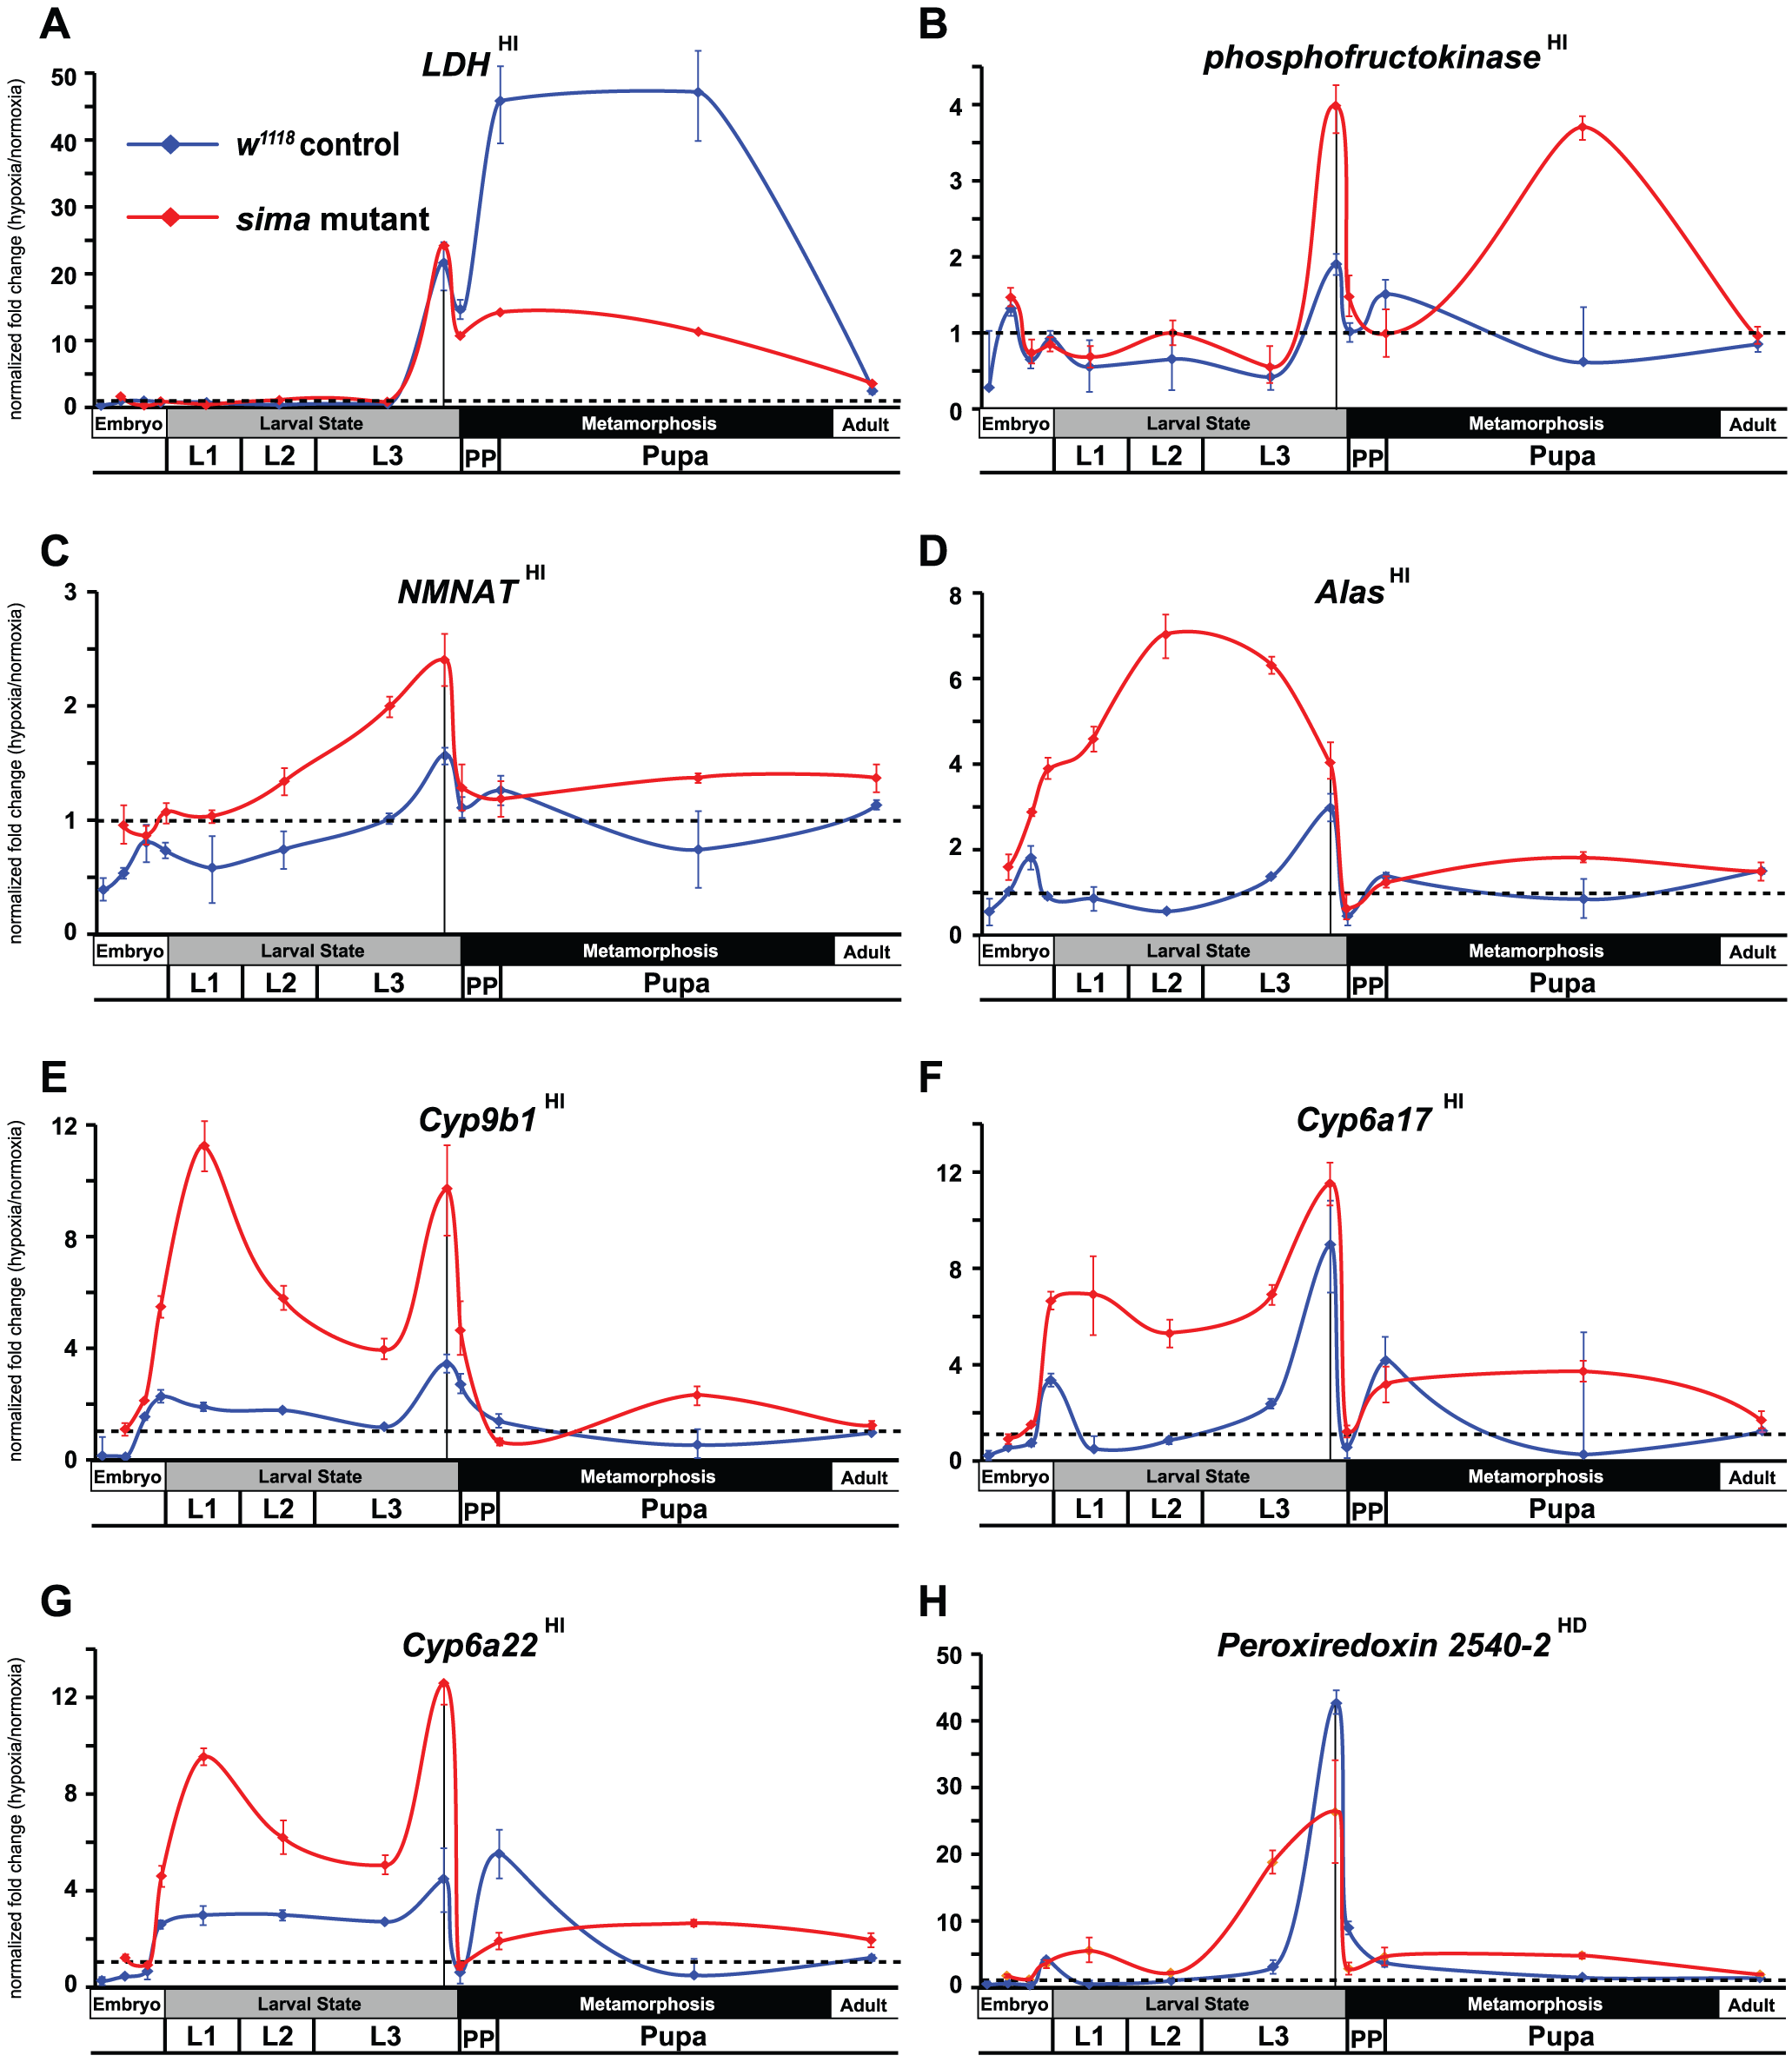 Temporal expression of HIF-independent hypoxic response genes.